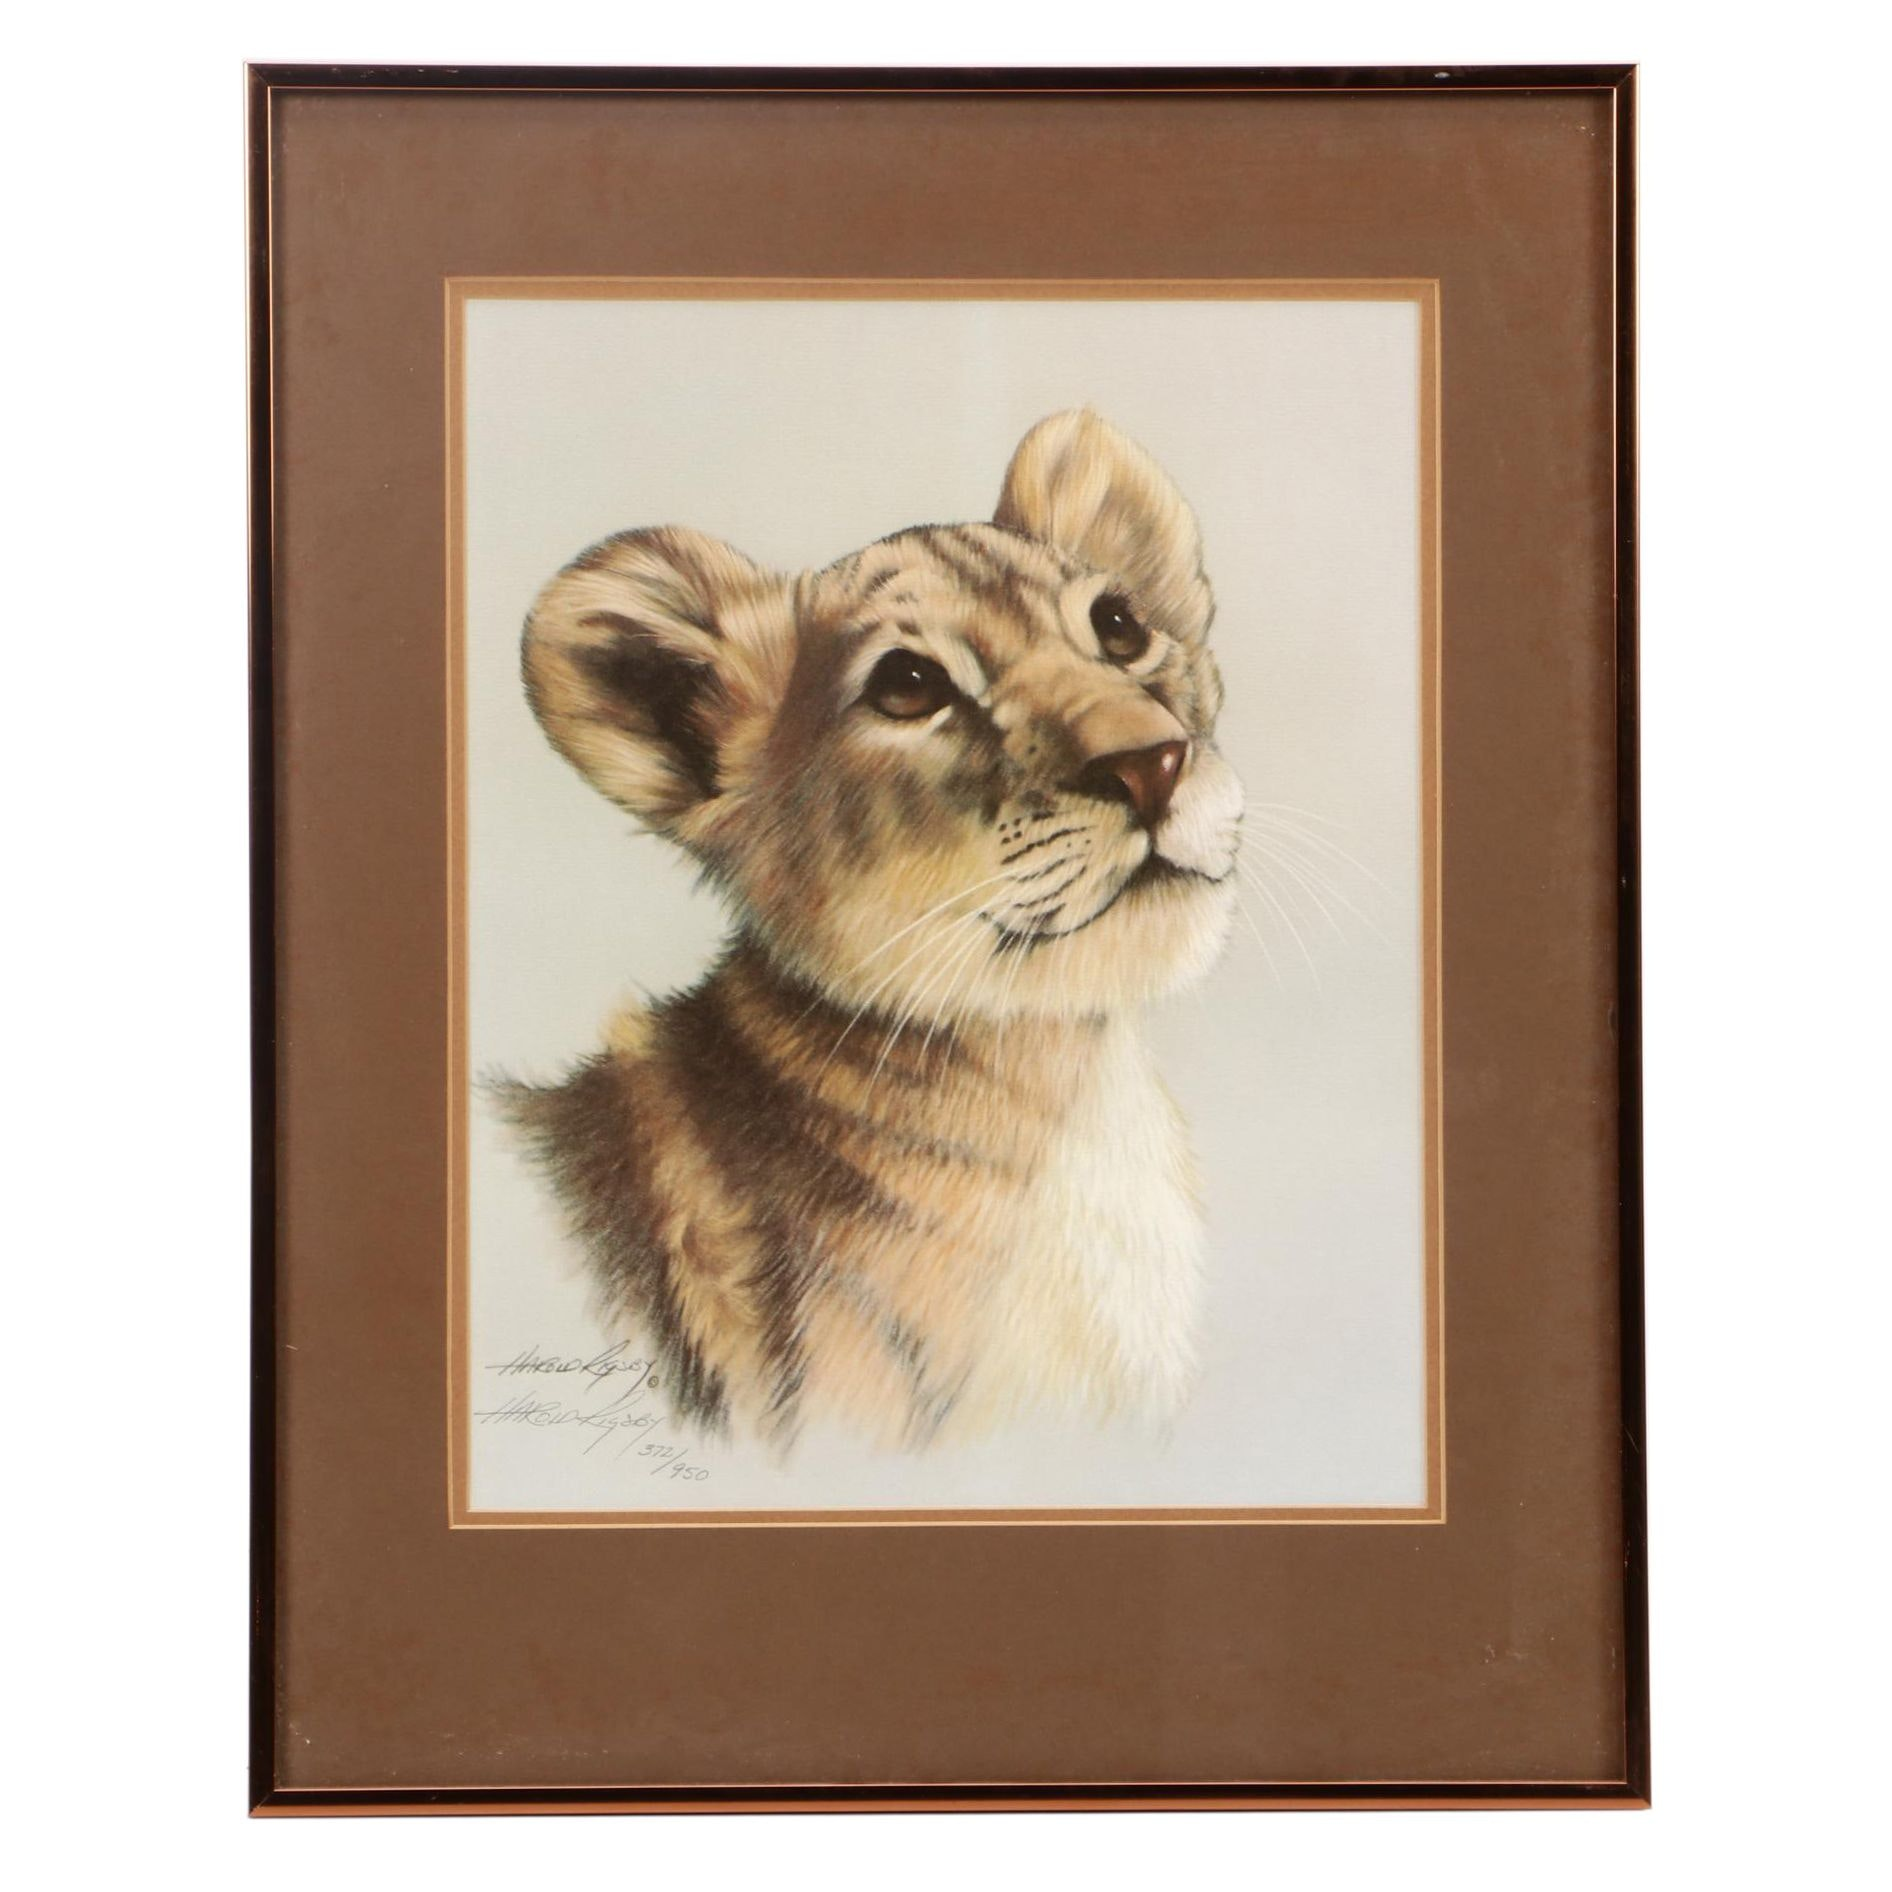 Harold Rigsby Limited Edition Offset Lithograph of Tiger Cub